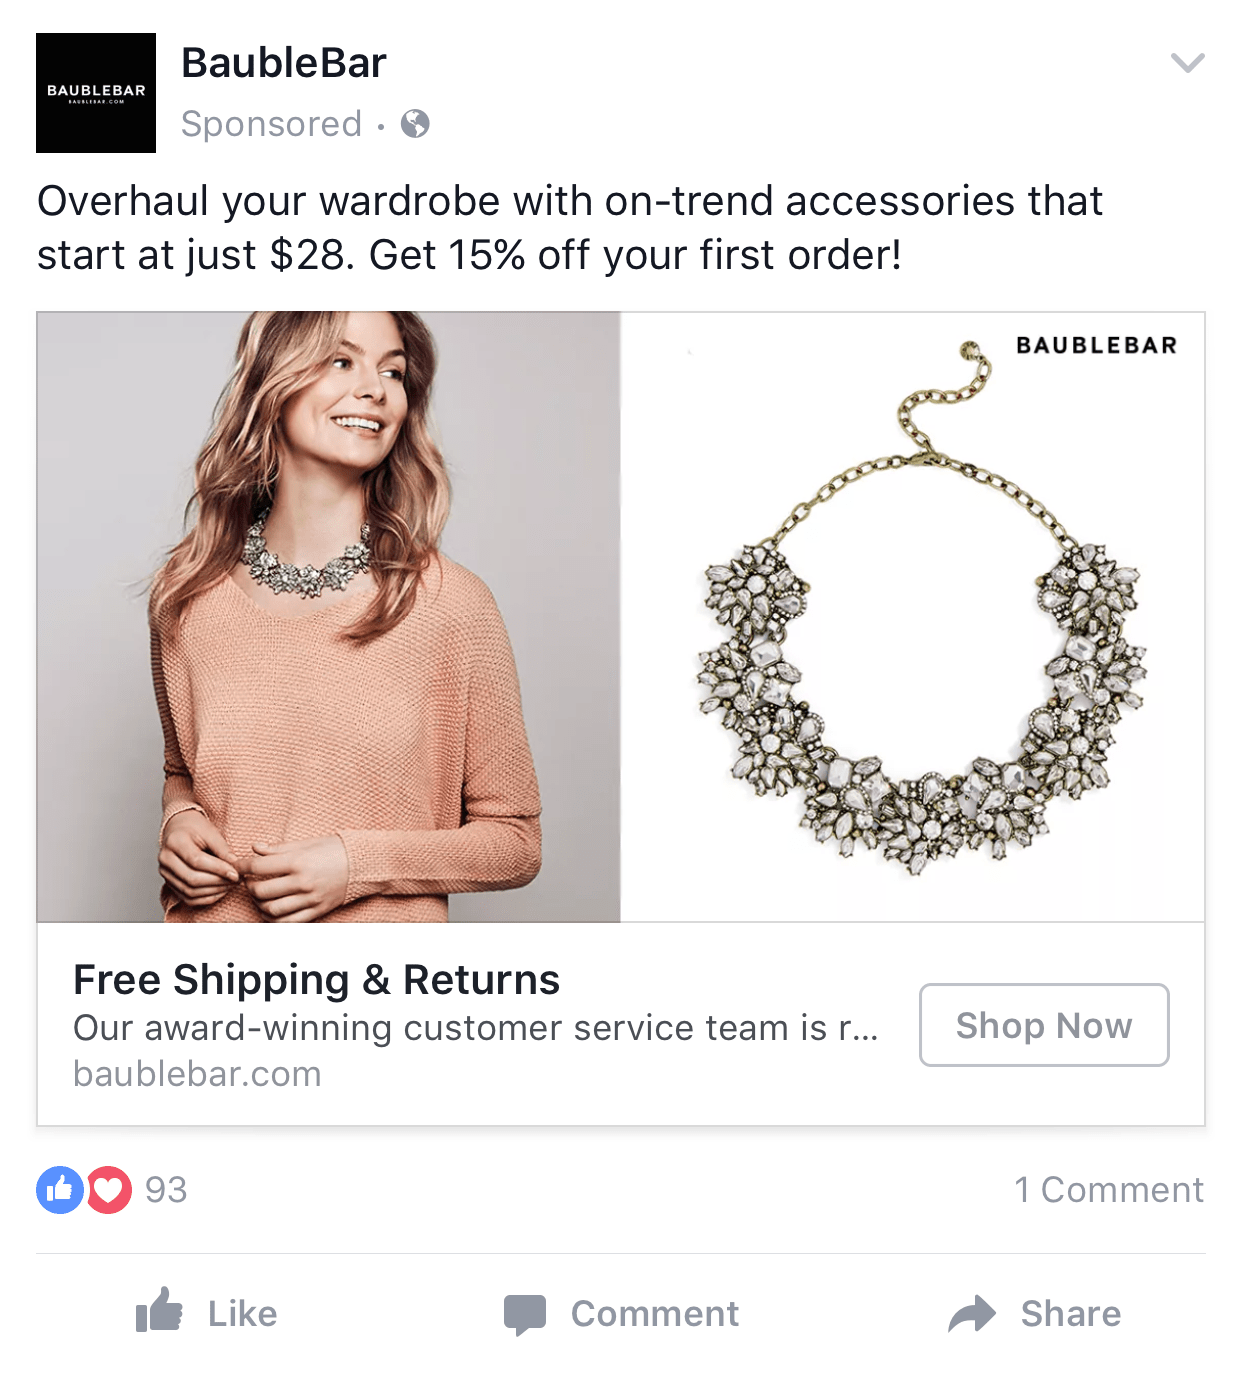 baublebar product sponsored ad